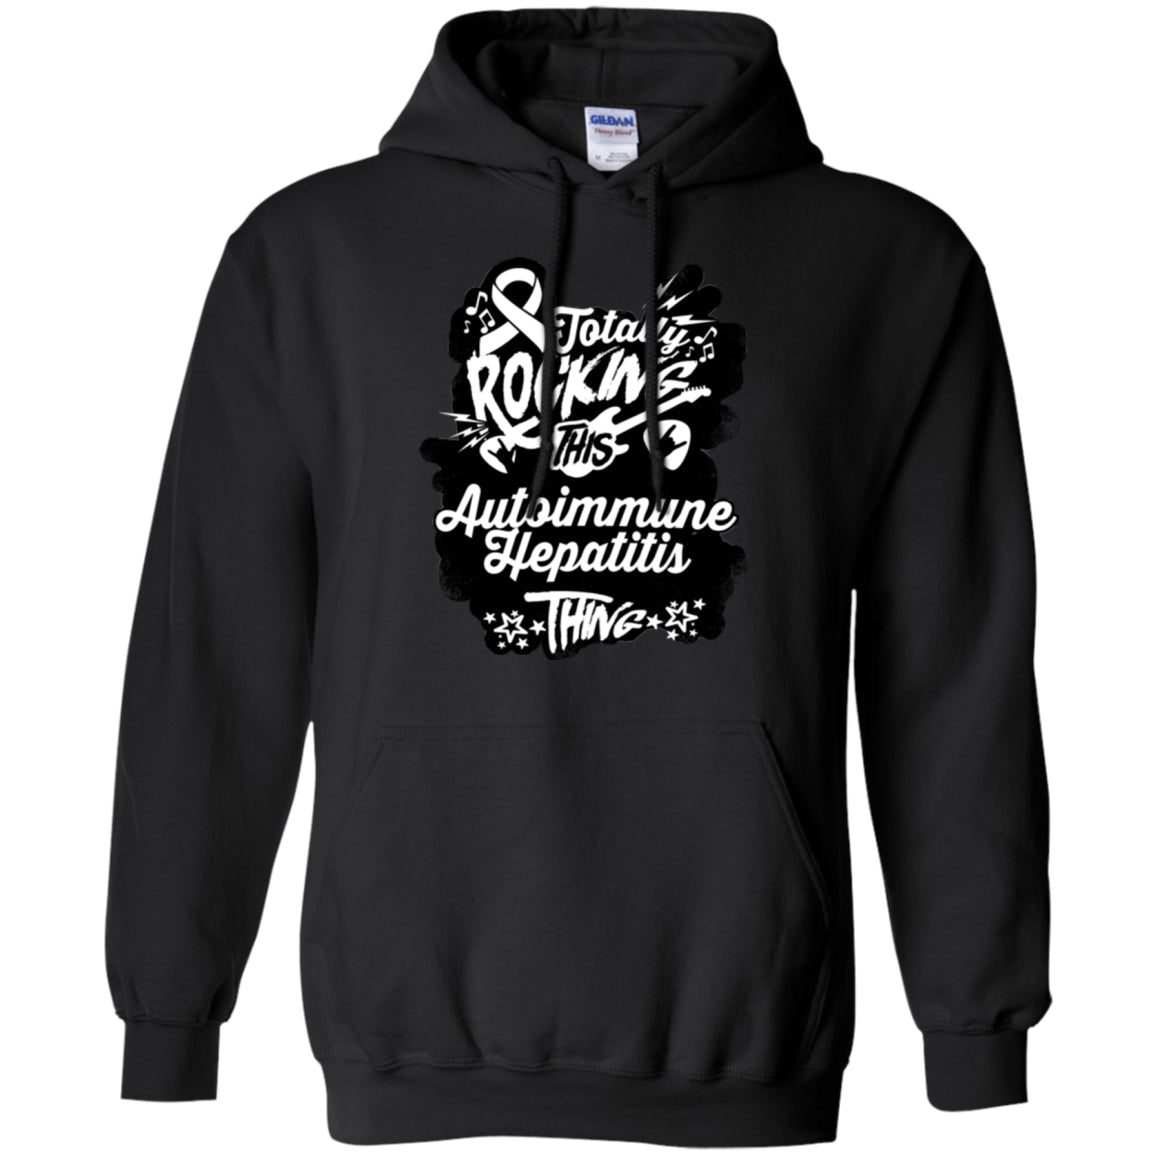 Rocking Autoimmune Hepatitis Pullover Hoodie 8 oz. - The Unchargeables